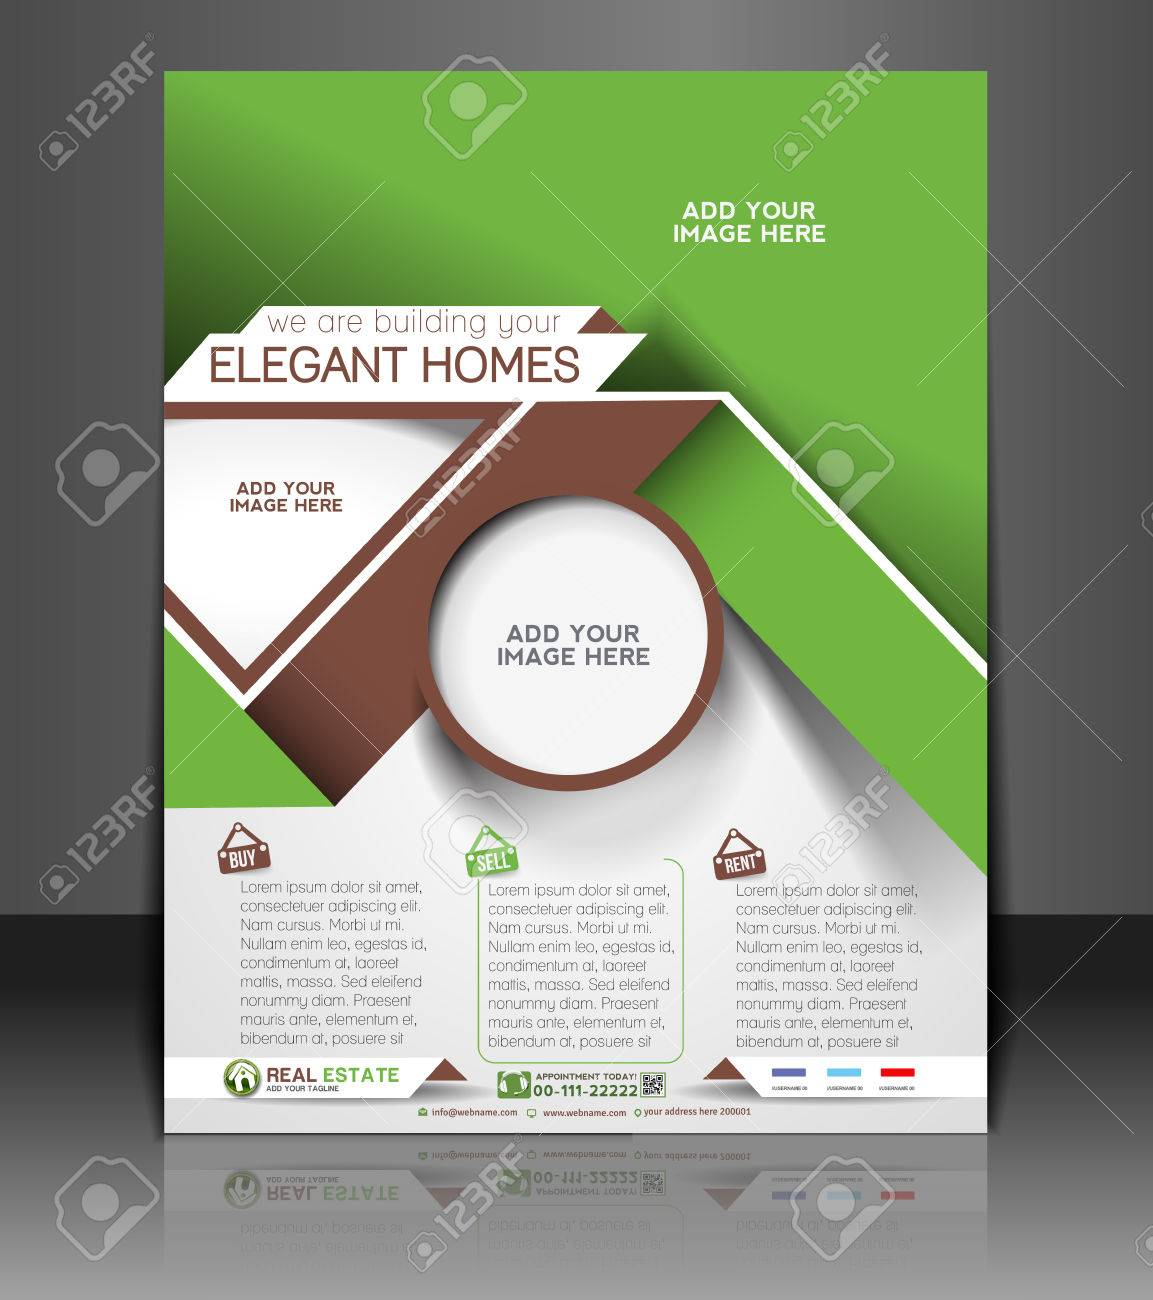 real estate agent flyer poster template royalty cliparts real estate agent flyer poster template stock vector 27142898